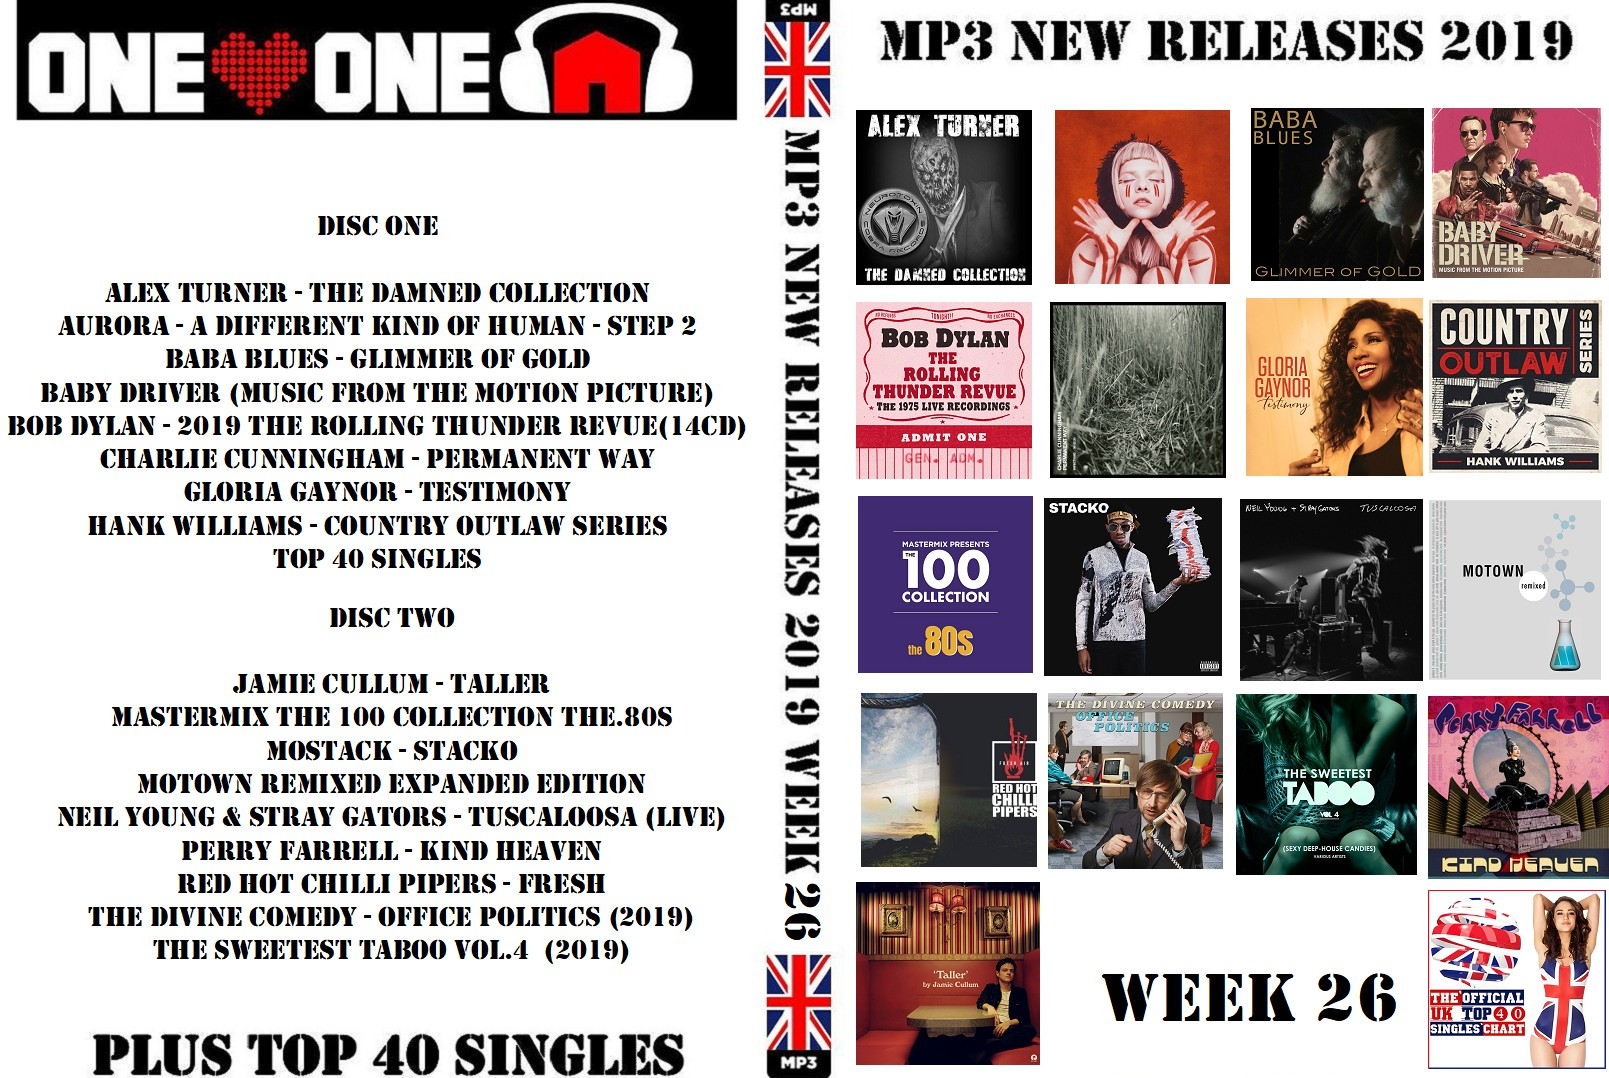 M P 3 NEW RELEASES 2019 WEEK 26